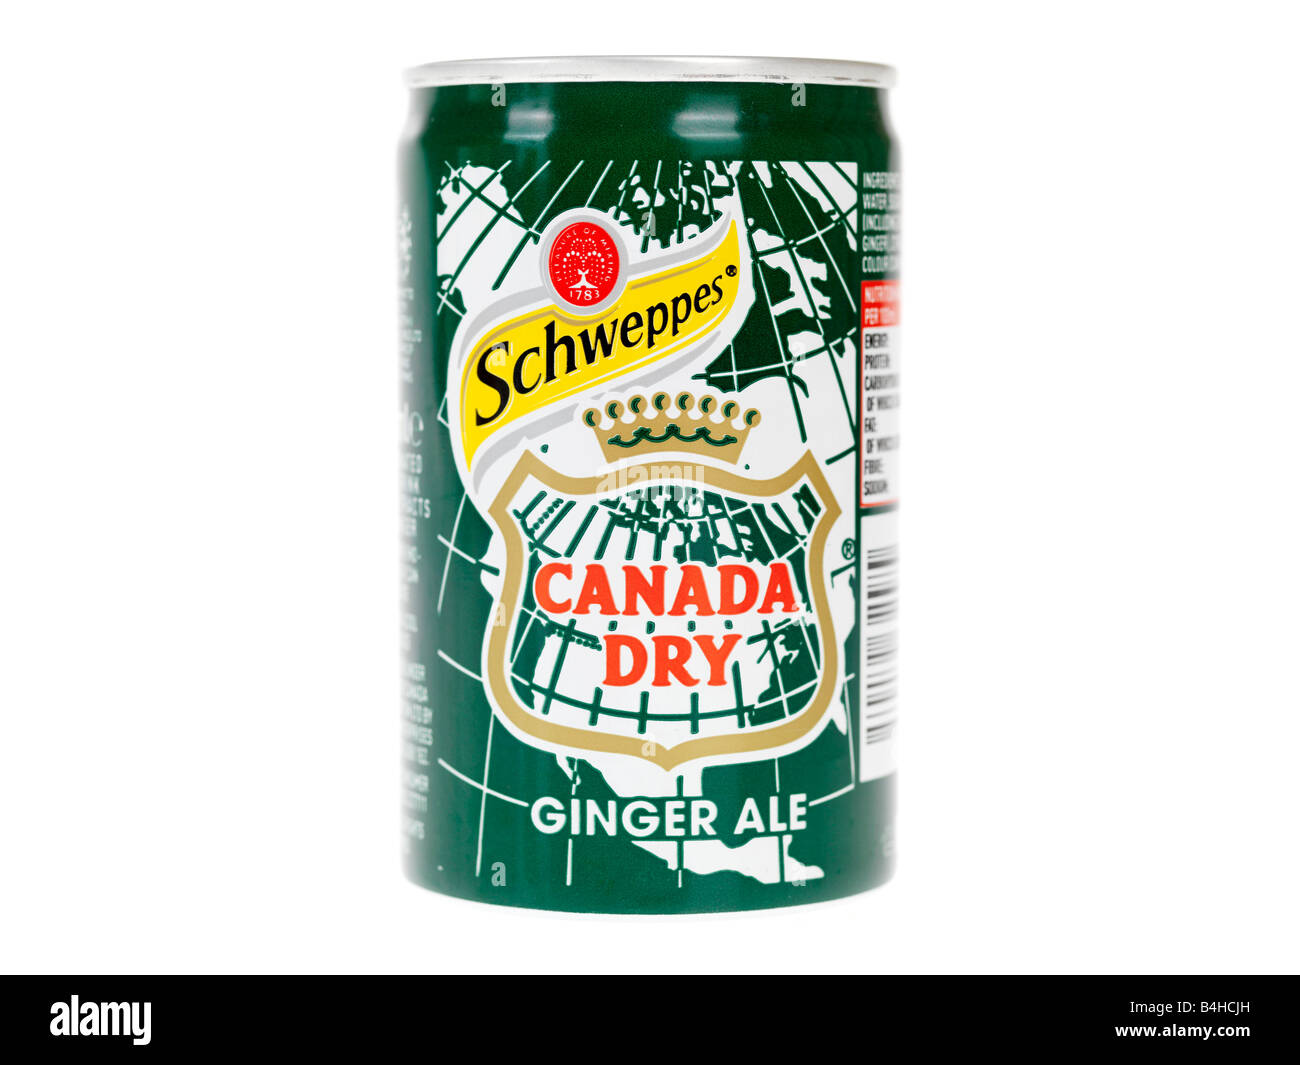 Can of Ginger Ale - Stock Image